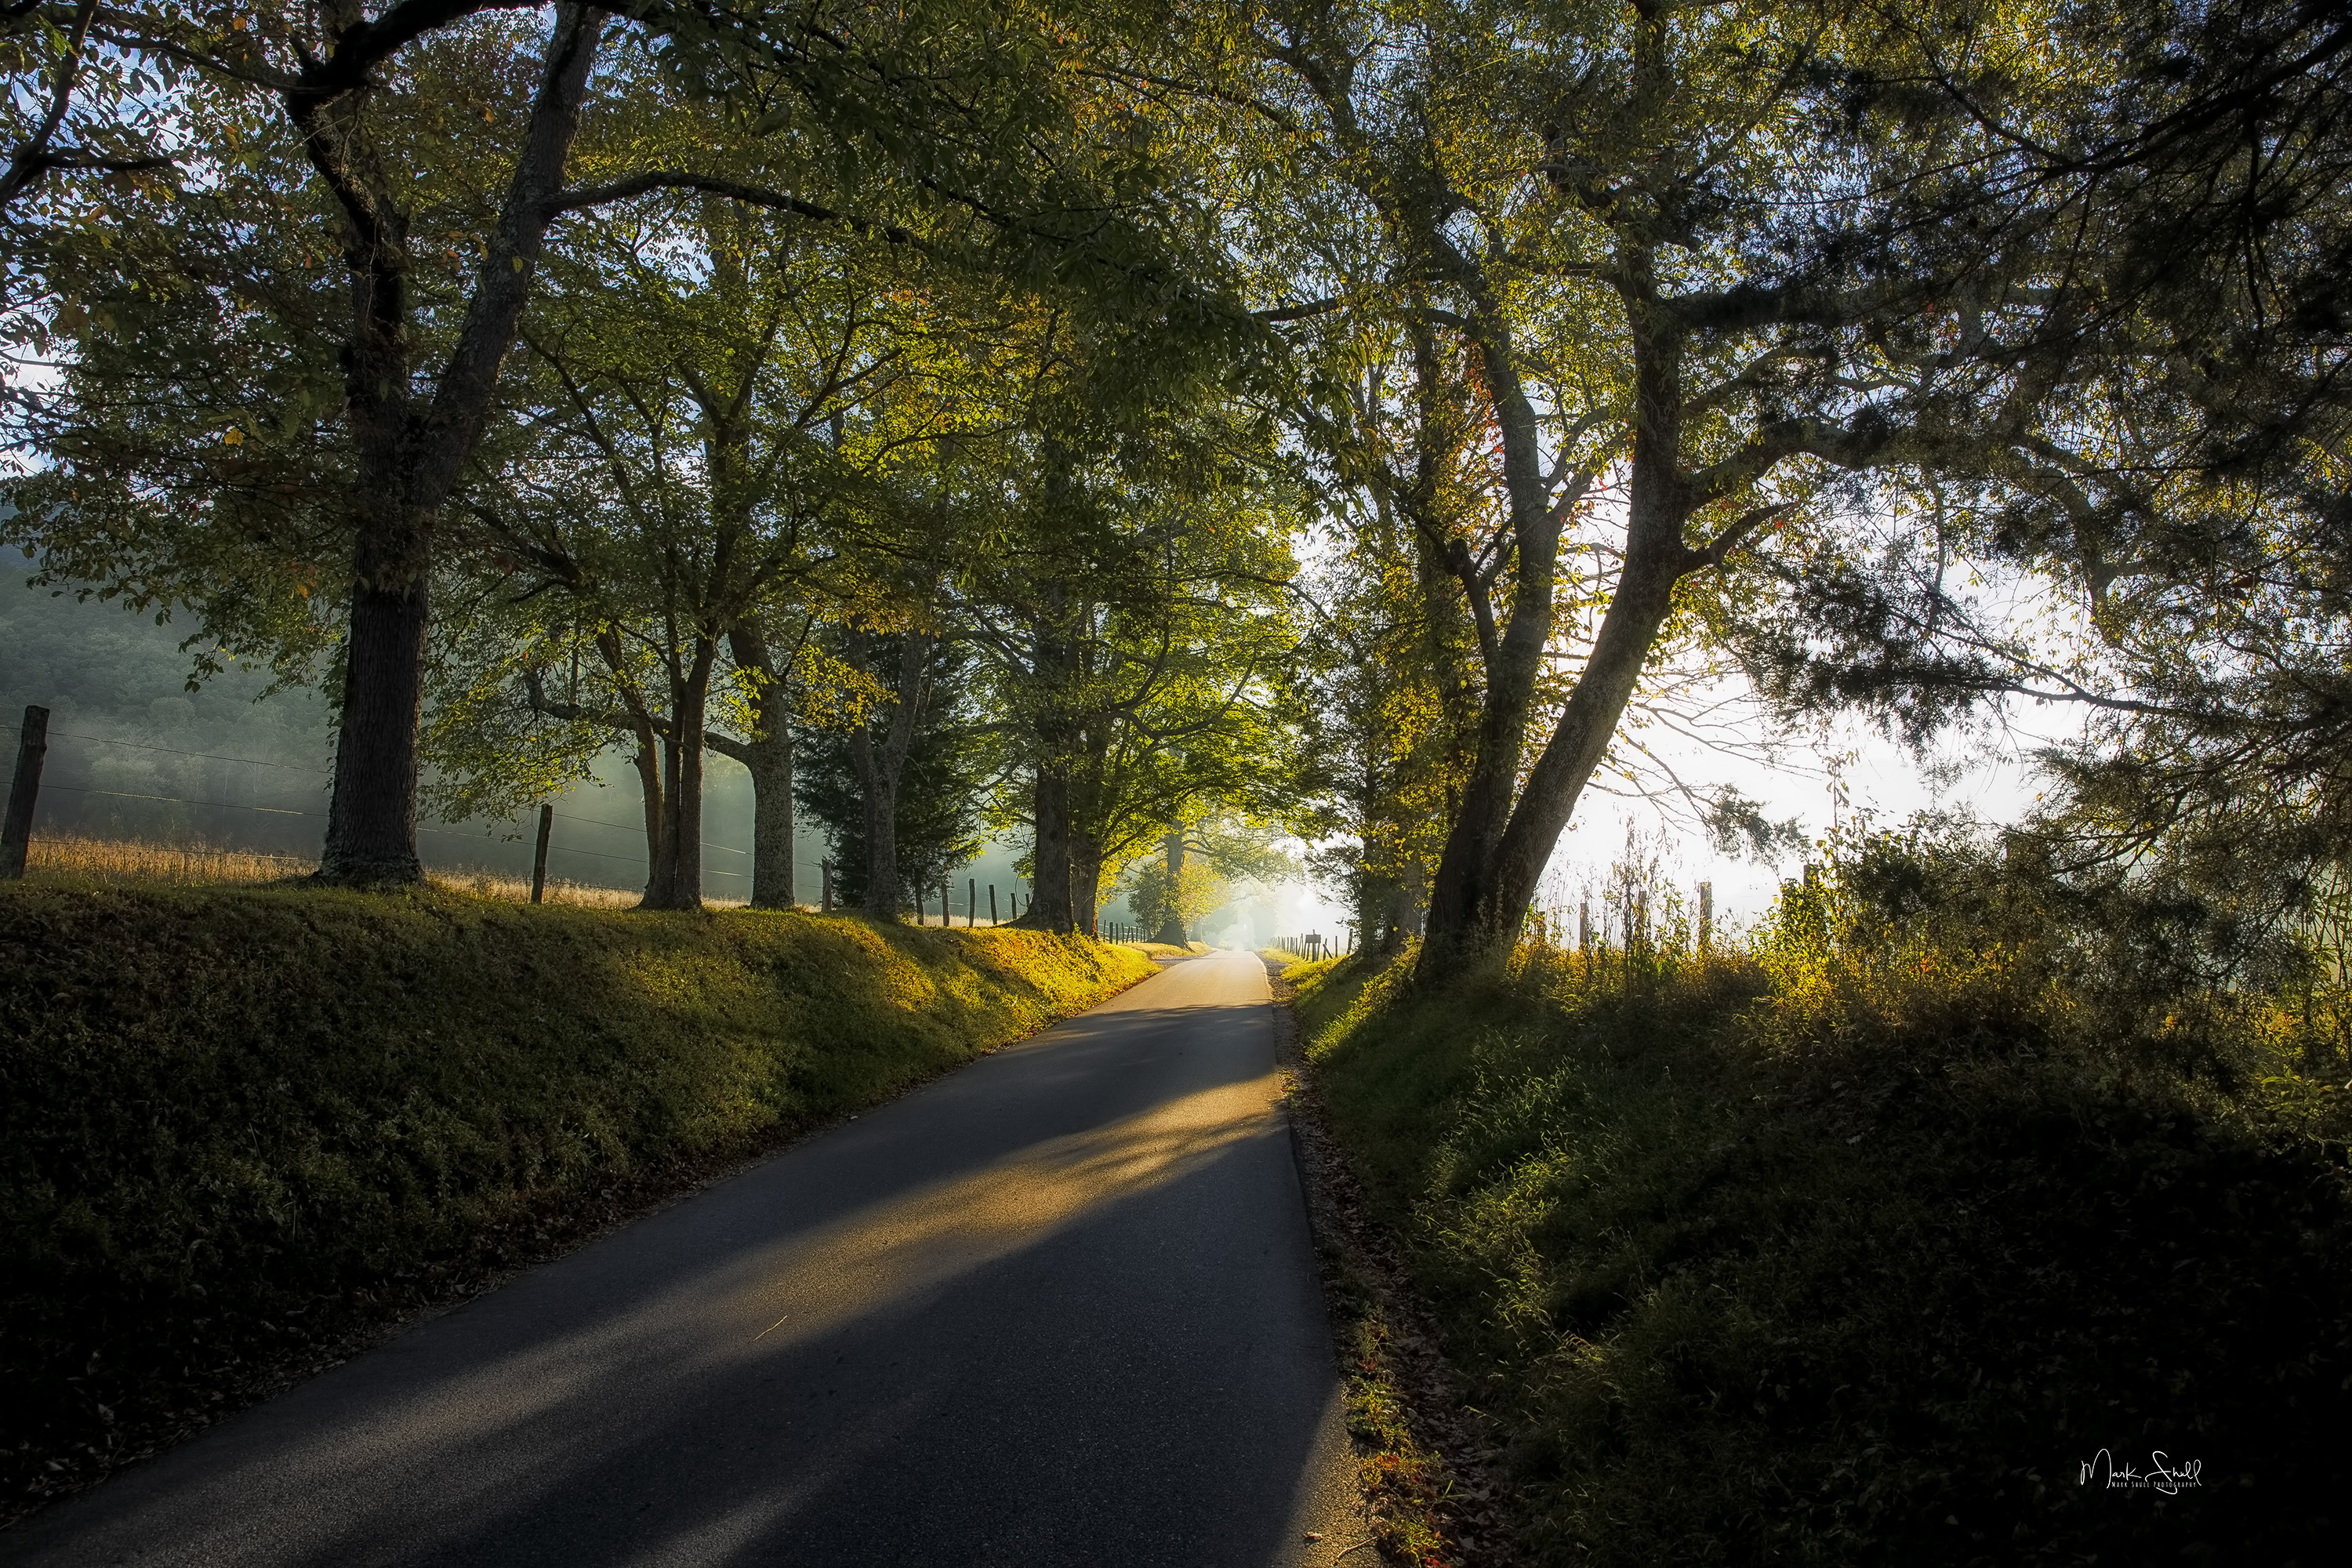 Cades Cove road entrance sunrise